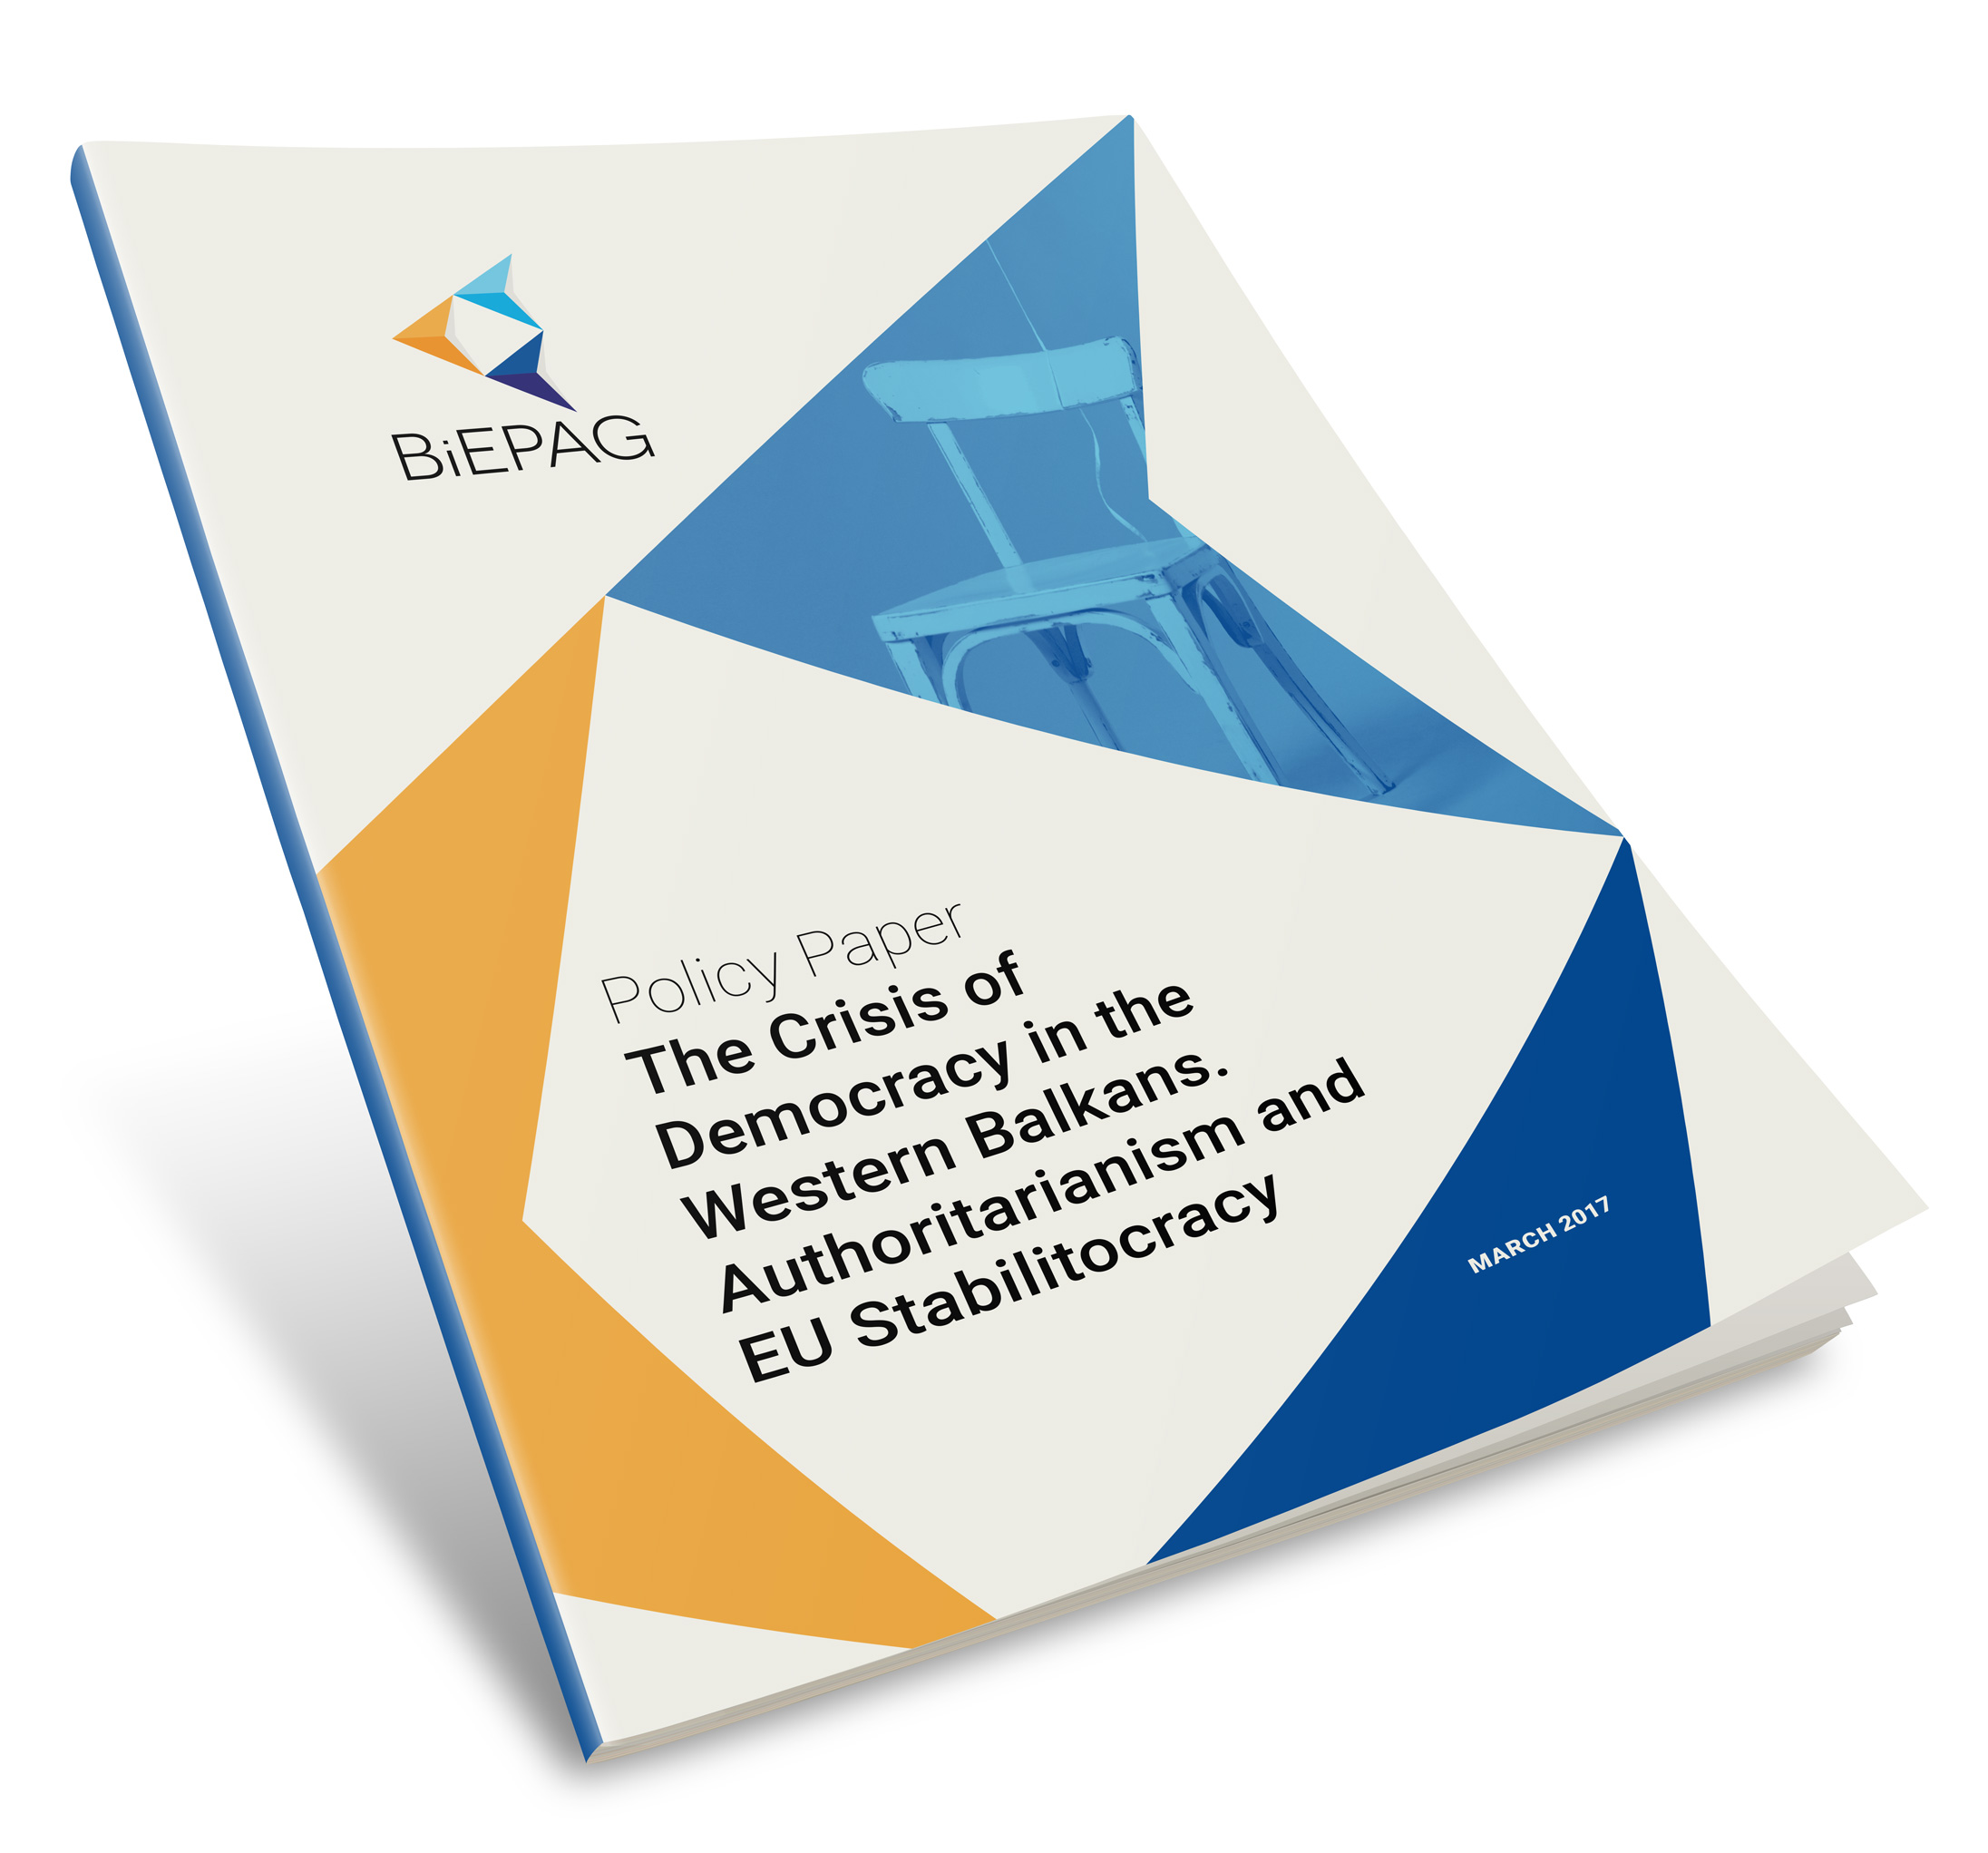 BiEPAG's policy brief 'The Crisis of Democracy in the Western Balkans. Authoritarianism and EU Stabilitocracy' presentation in the European Parliament